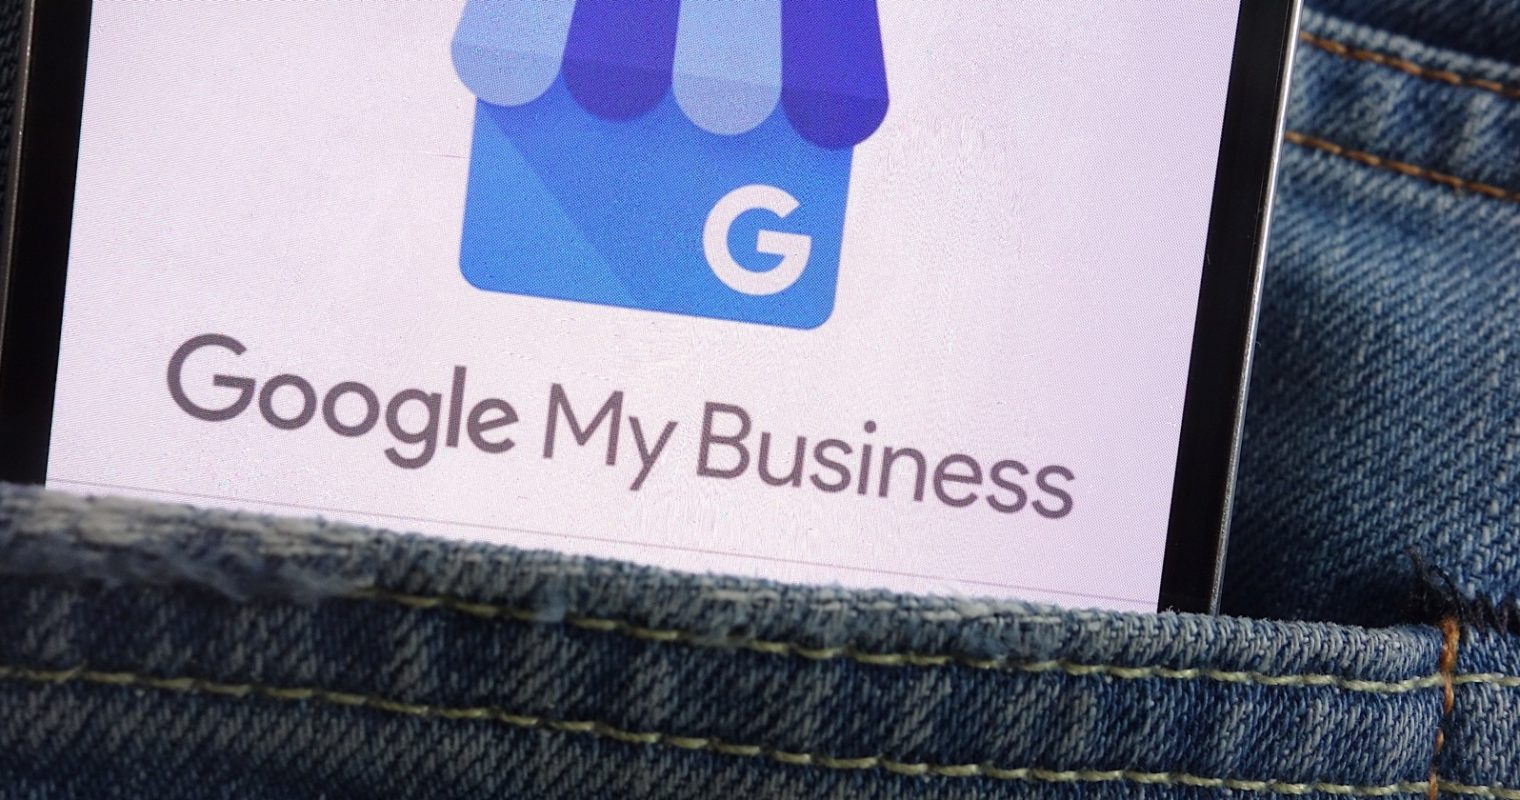 Google My Business Adds New Post Types for Products and Offers